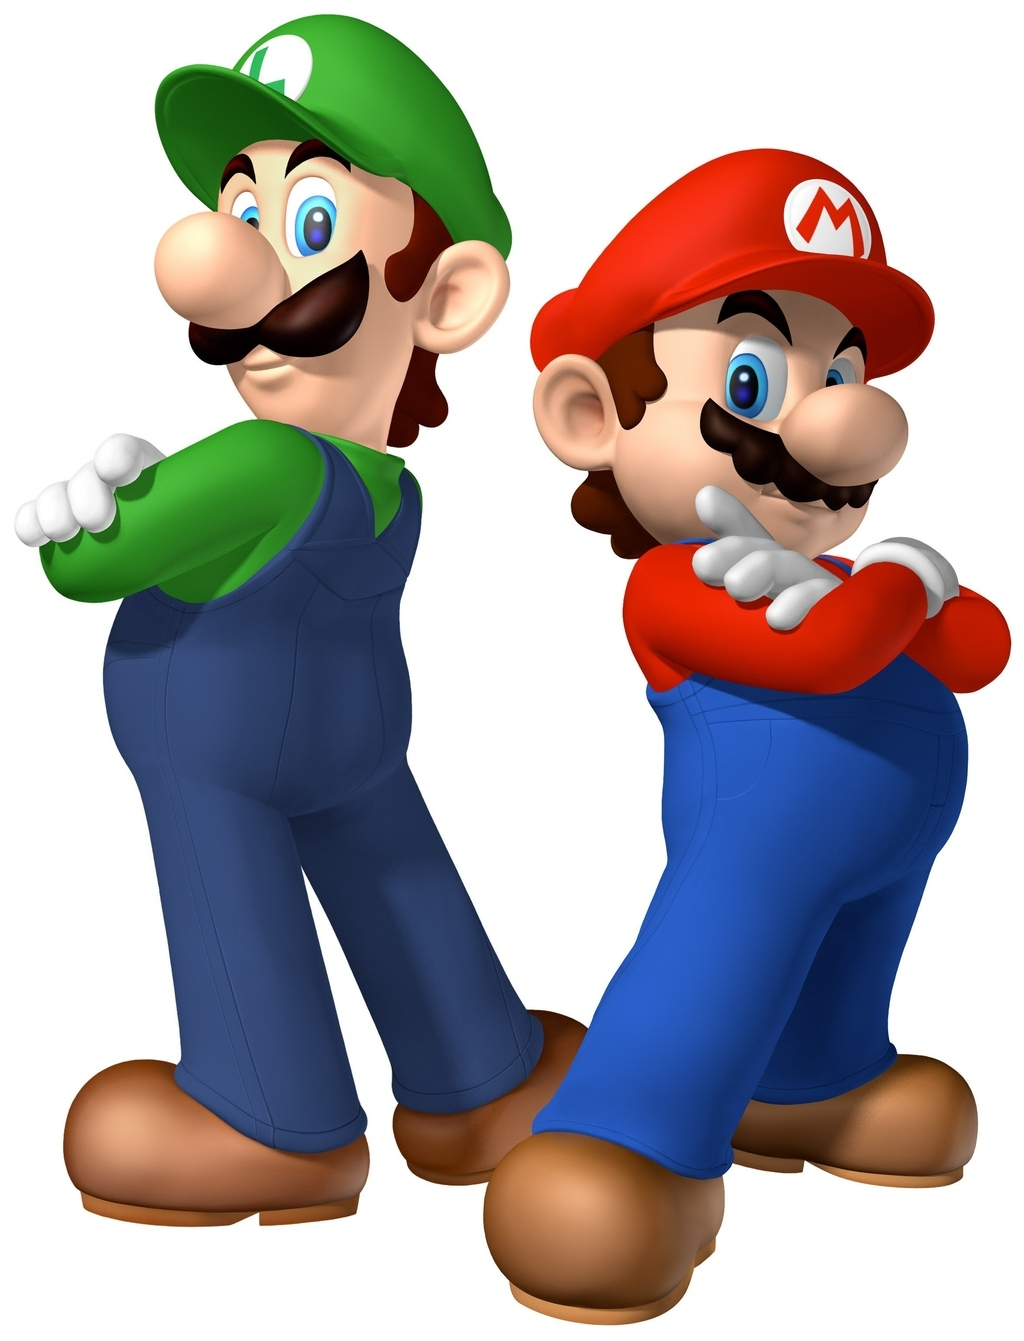 What Is The Greatest Bromance In Video Game History?